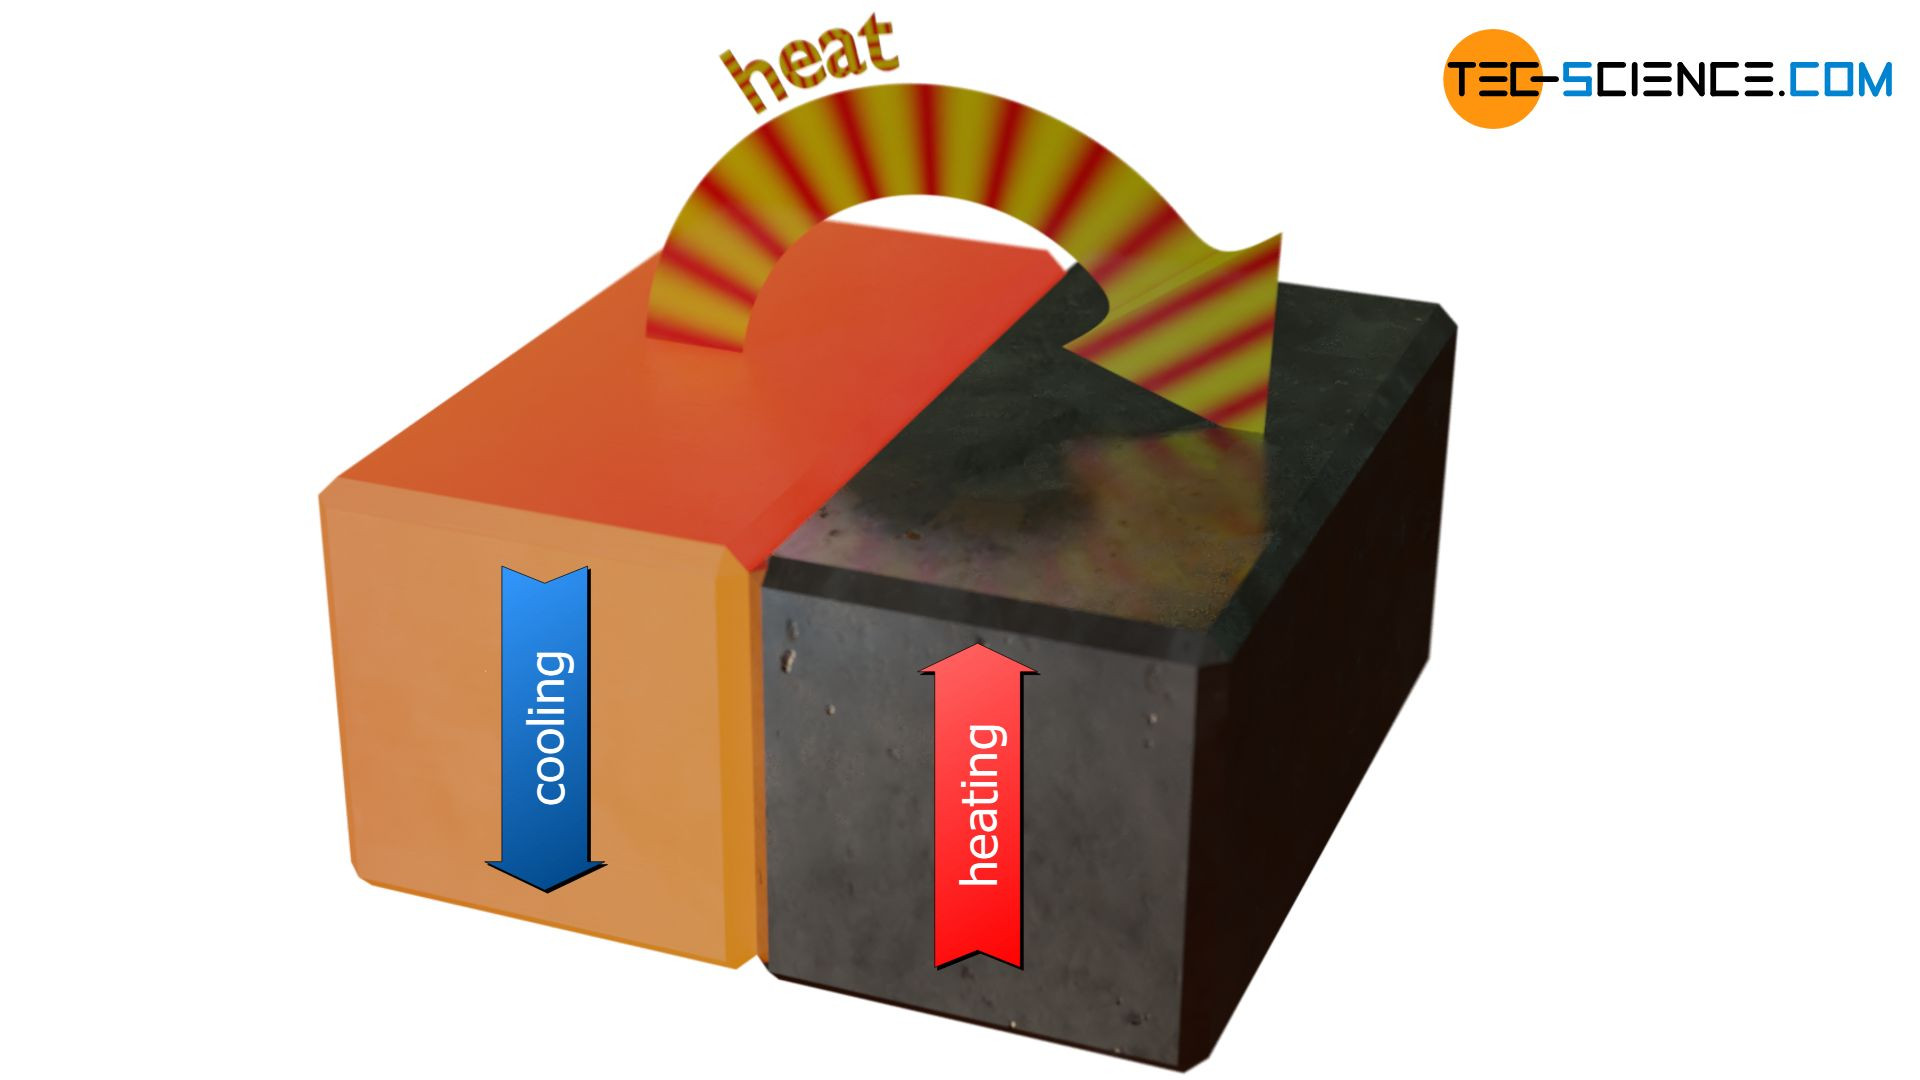 Heat transfer from a hot object to a cooler one